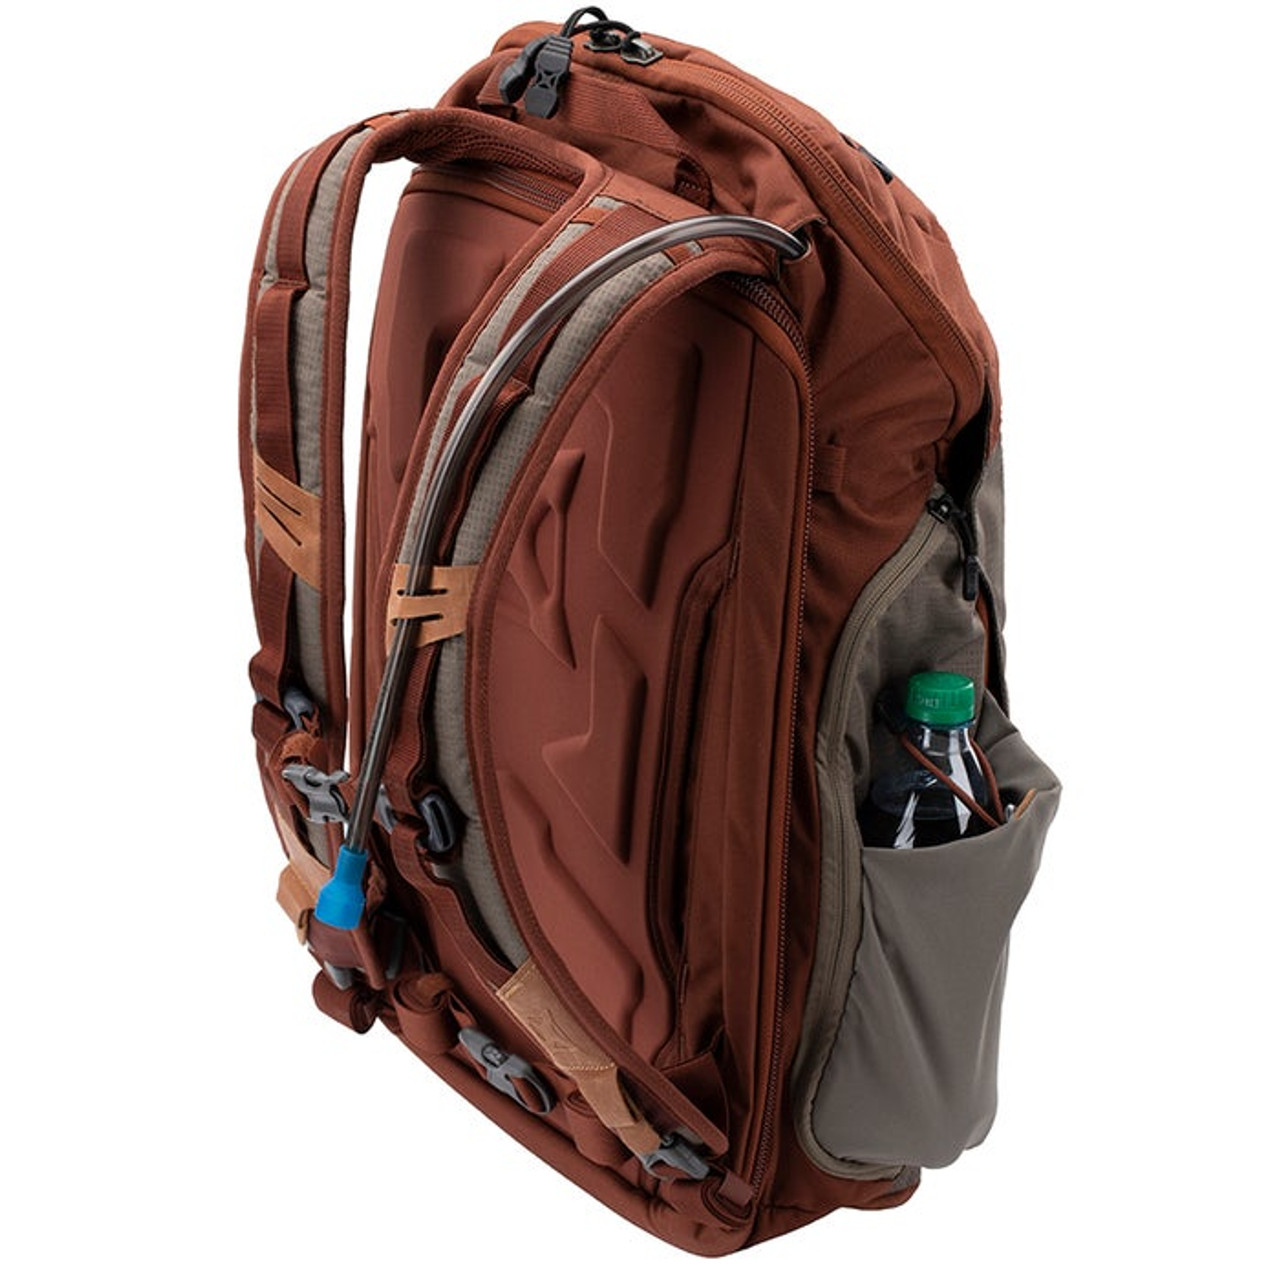 Vertx Gamut 2.0 Backpack (It's Black)